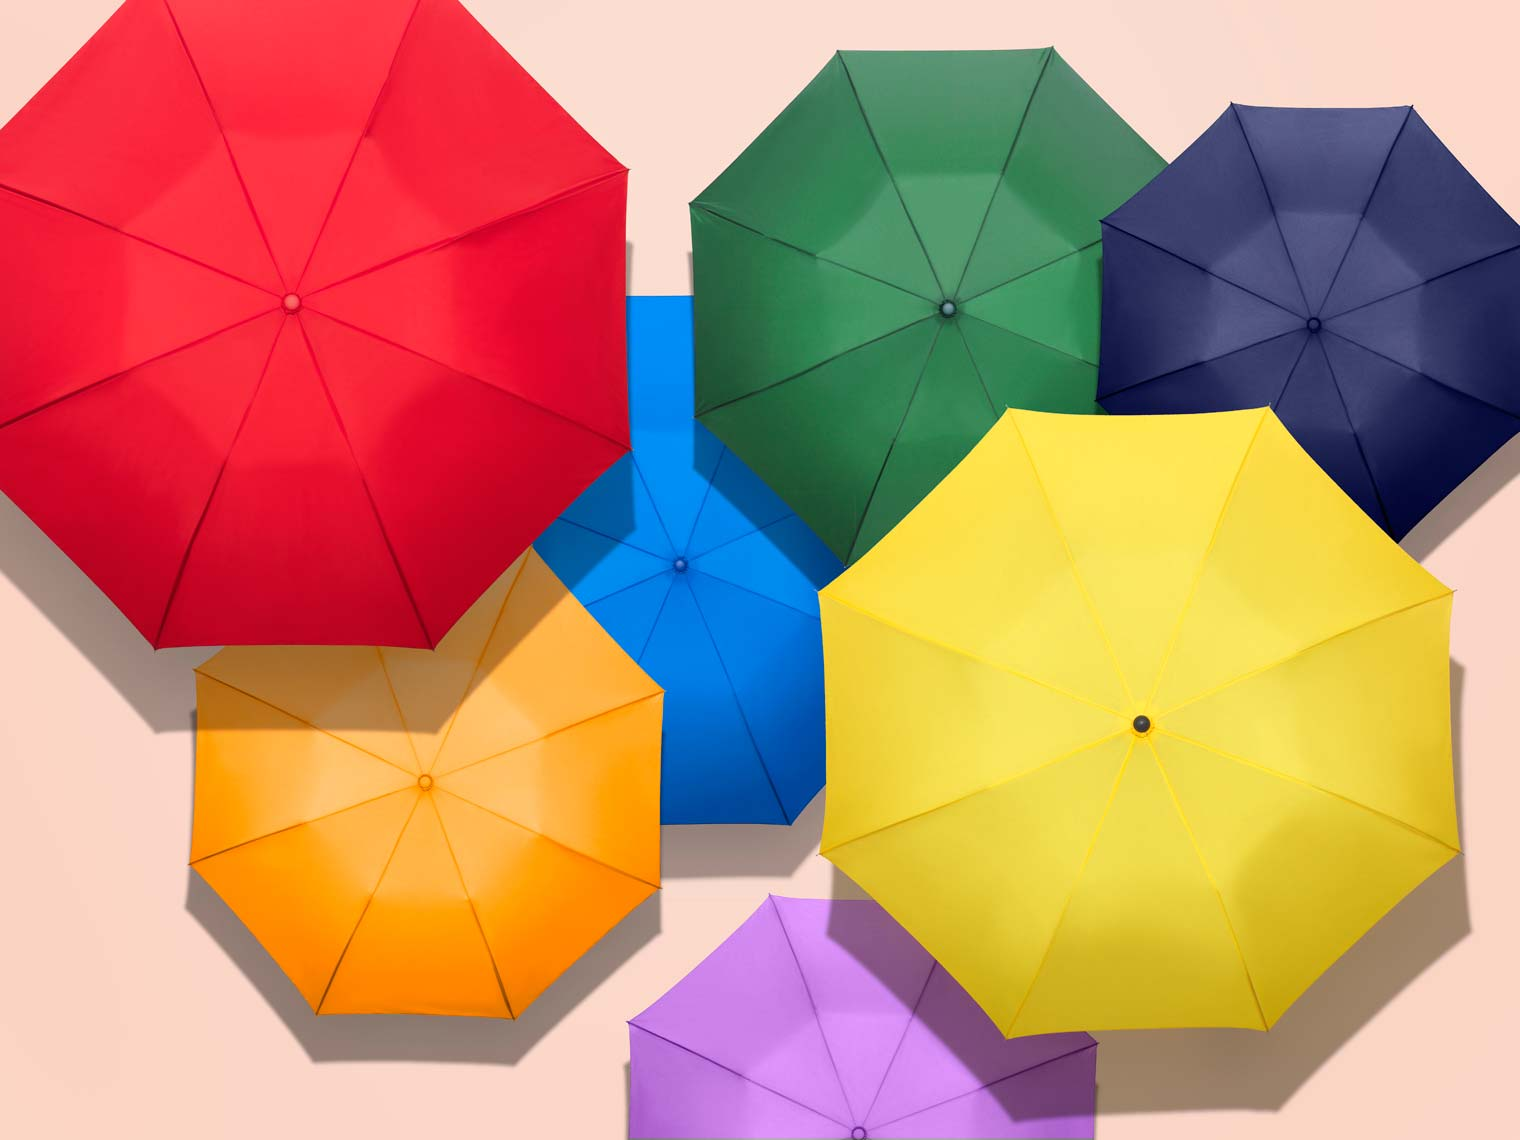 colorful umbrellas arranged in a graphic pattern